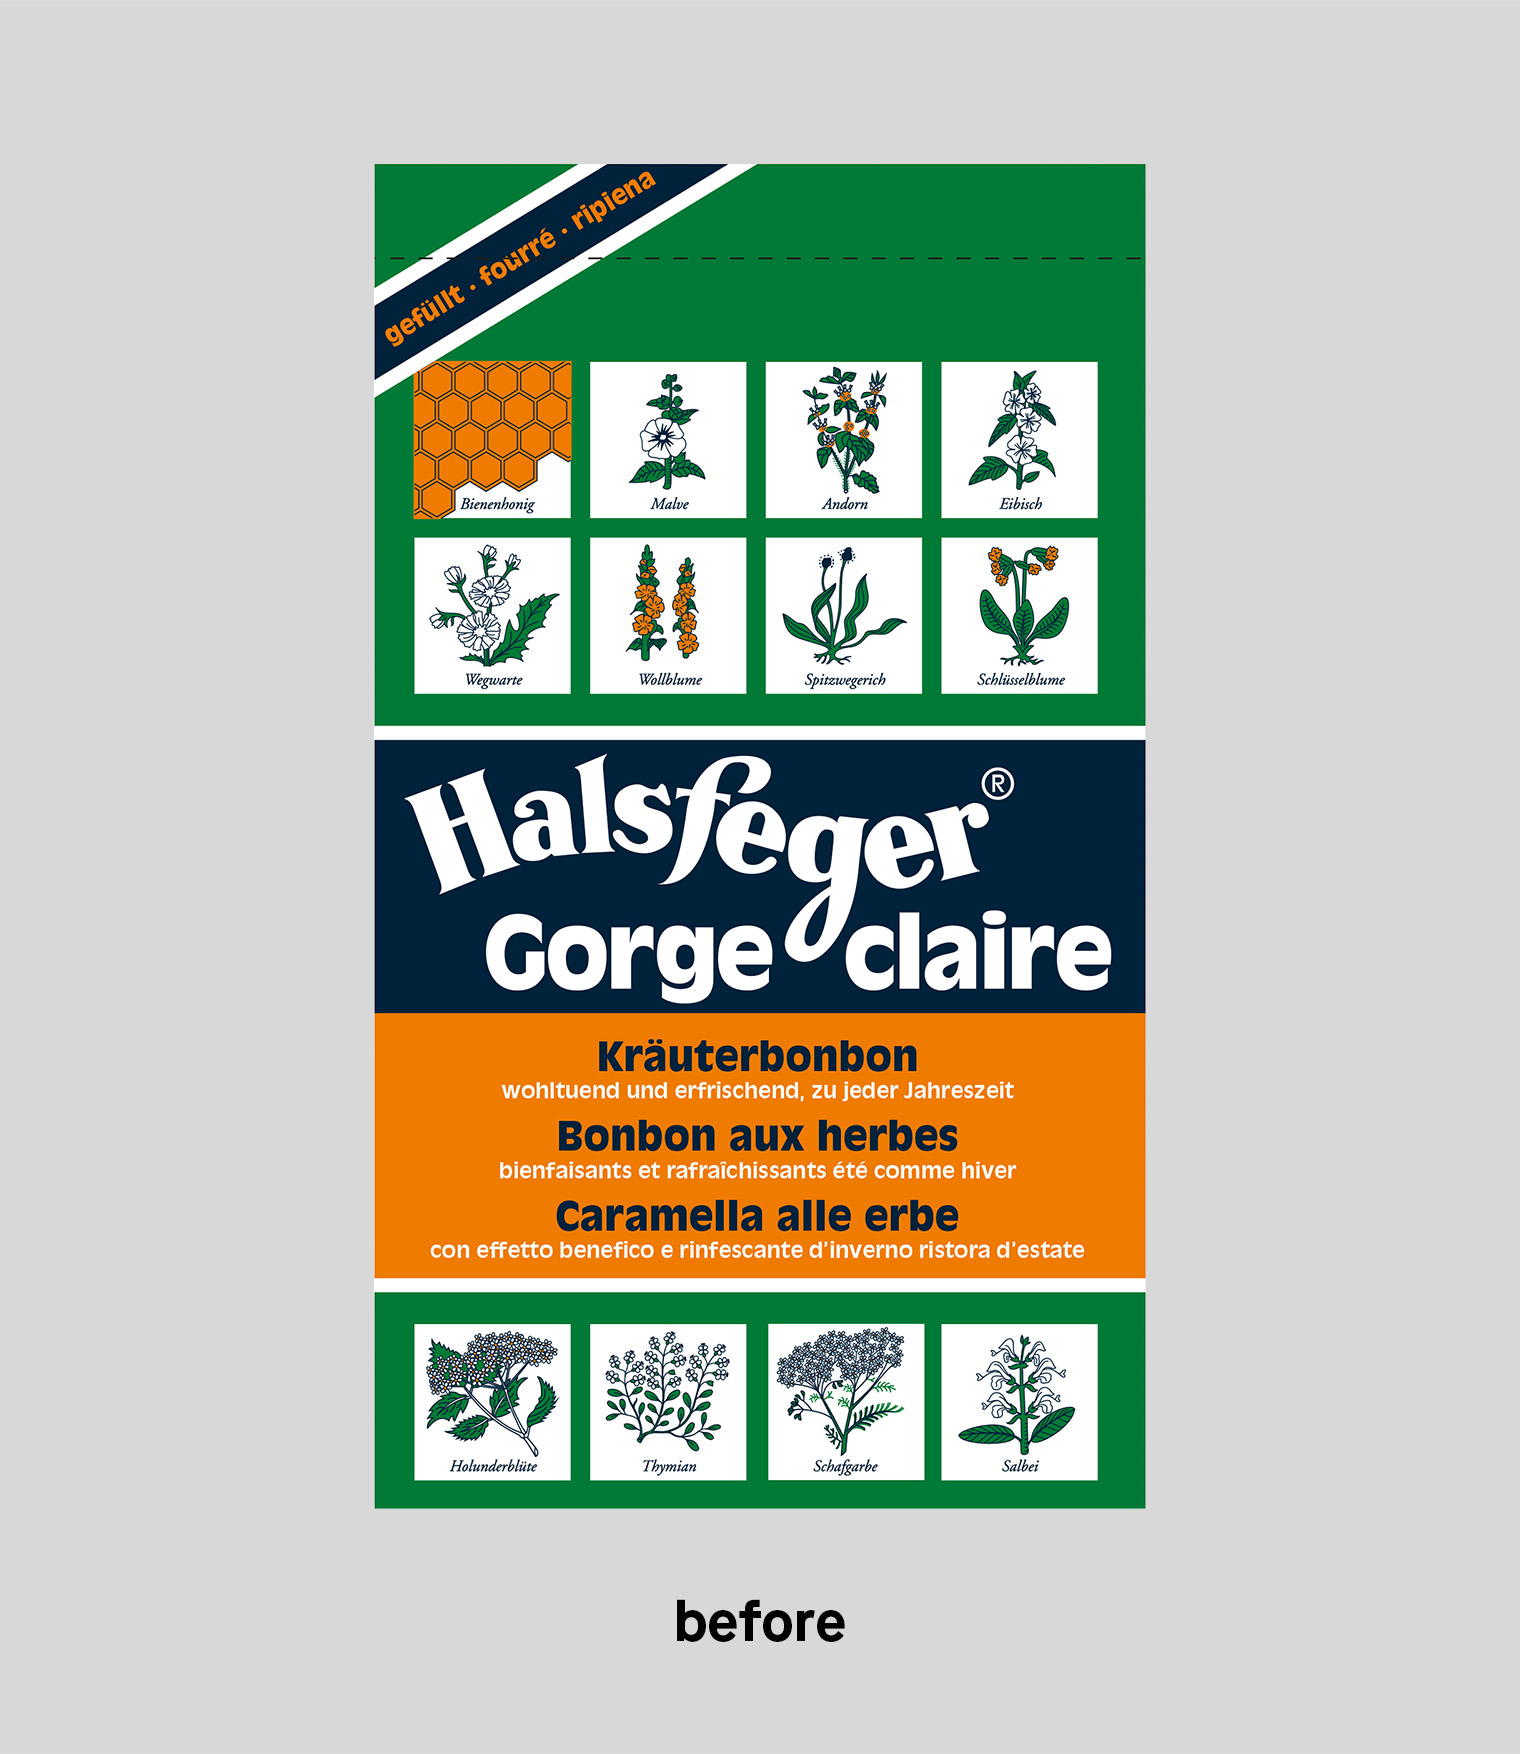 Halsfeger » Process Group – Classic candy brand back in bloom